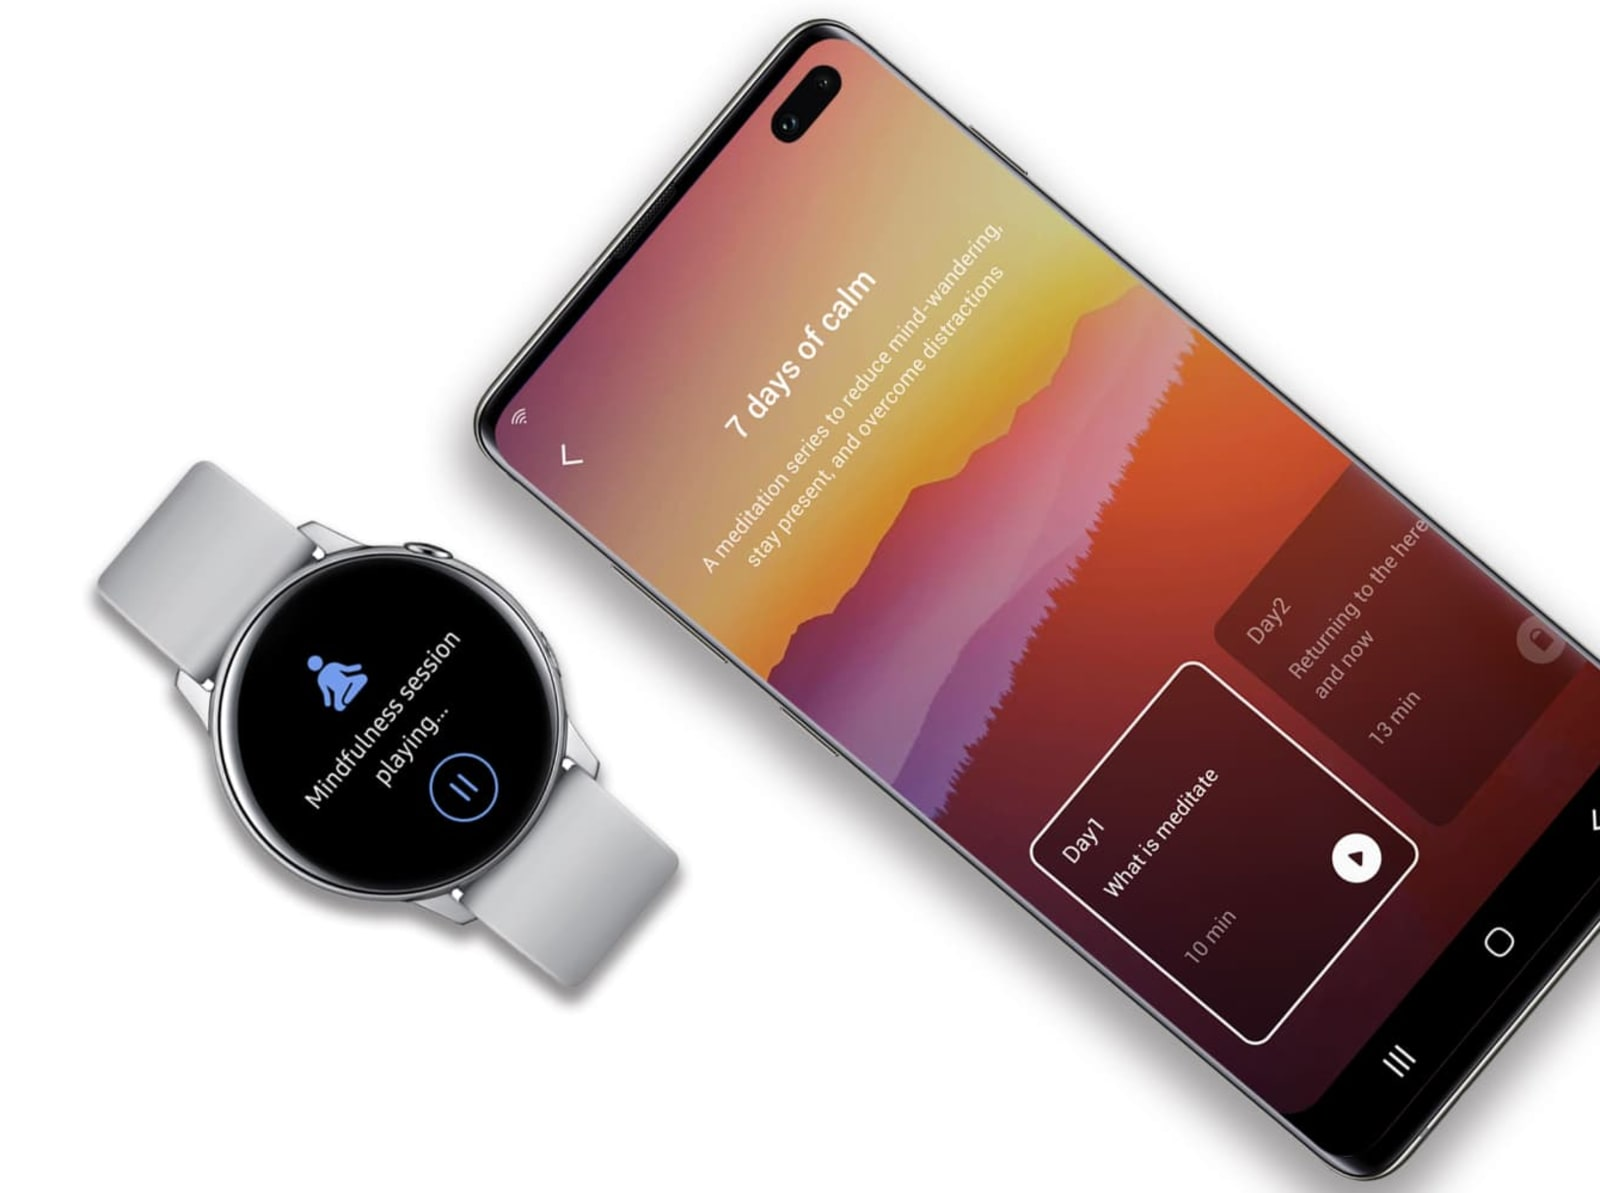 Samsung Health adds Calm's sleep and relaxation tools